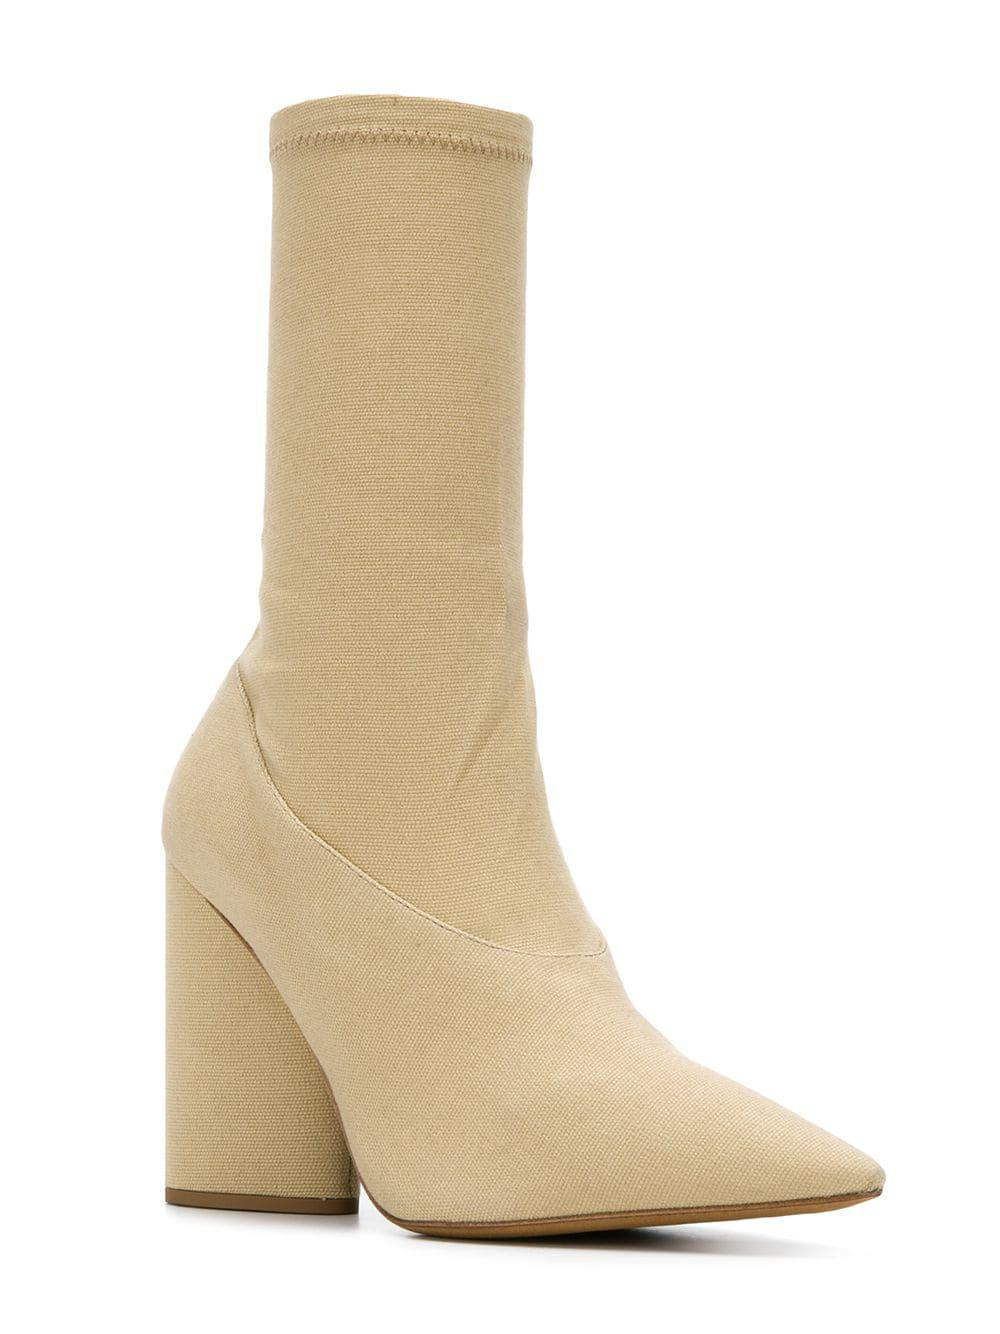 0bbbd71da20 Lyst - Yeezy Knitted Ankle Boots in Natural - Save 4%